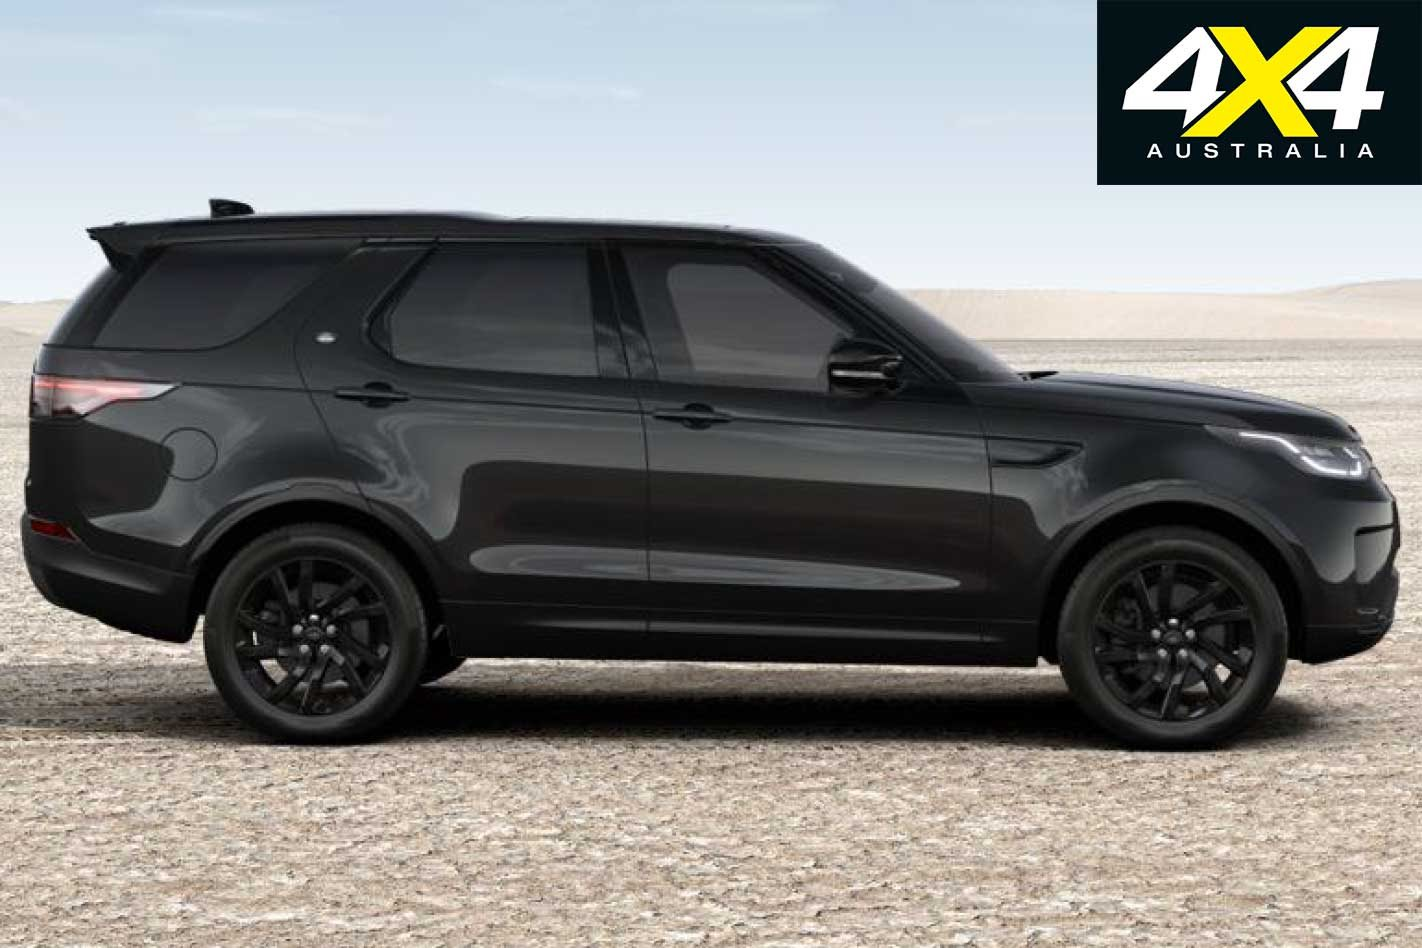 2019 Land Rover Discovery Review And Price >> 2019 Land Rover Discovery Sd4 Long Term Review 4x4 Shed